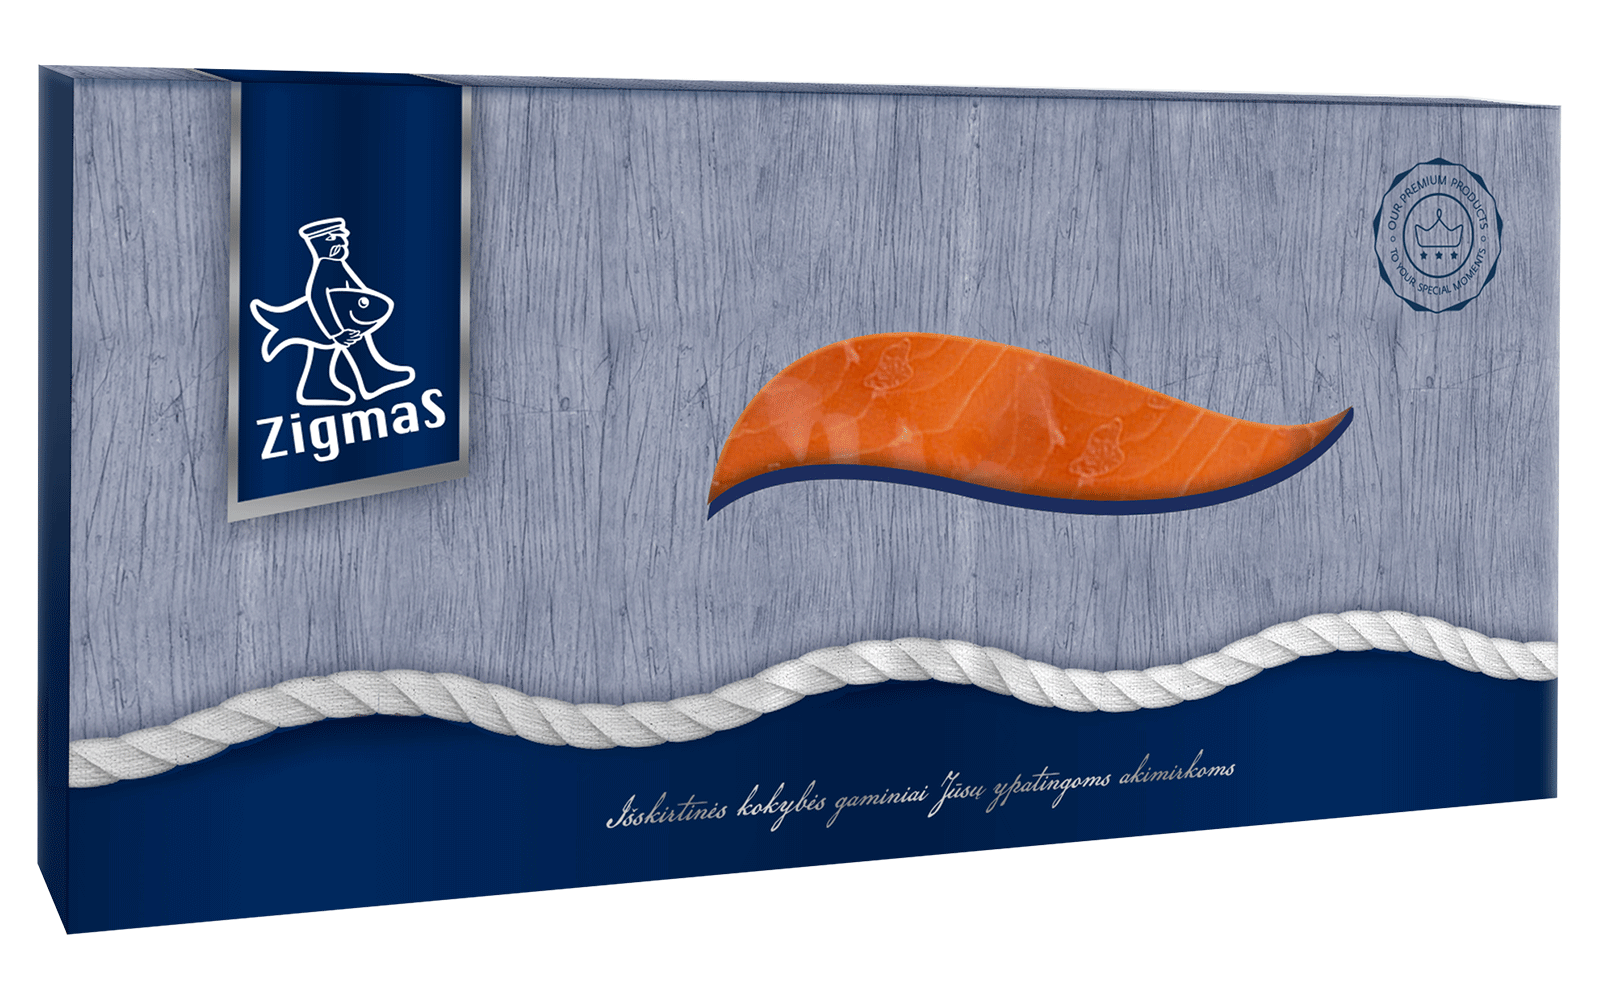 https://www.icecofish.com/wp-content/uploads/2016/06/zigmas-cold-smoked-salmon-fillet-sliced-1000g-1600x1000.png